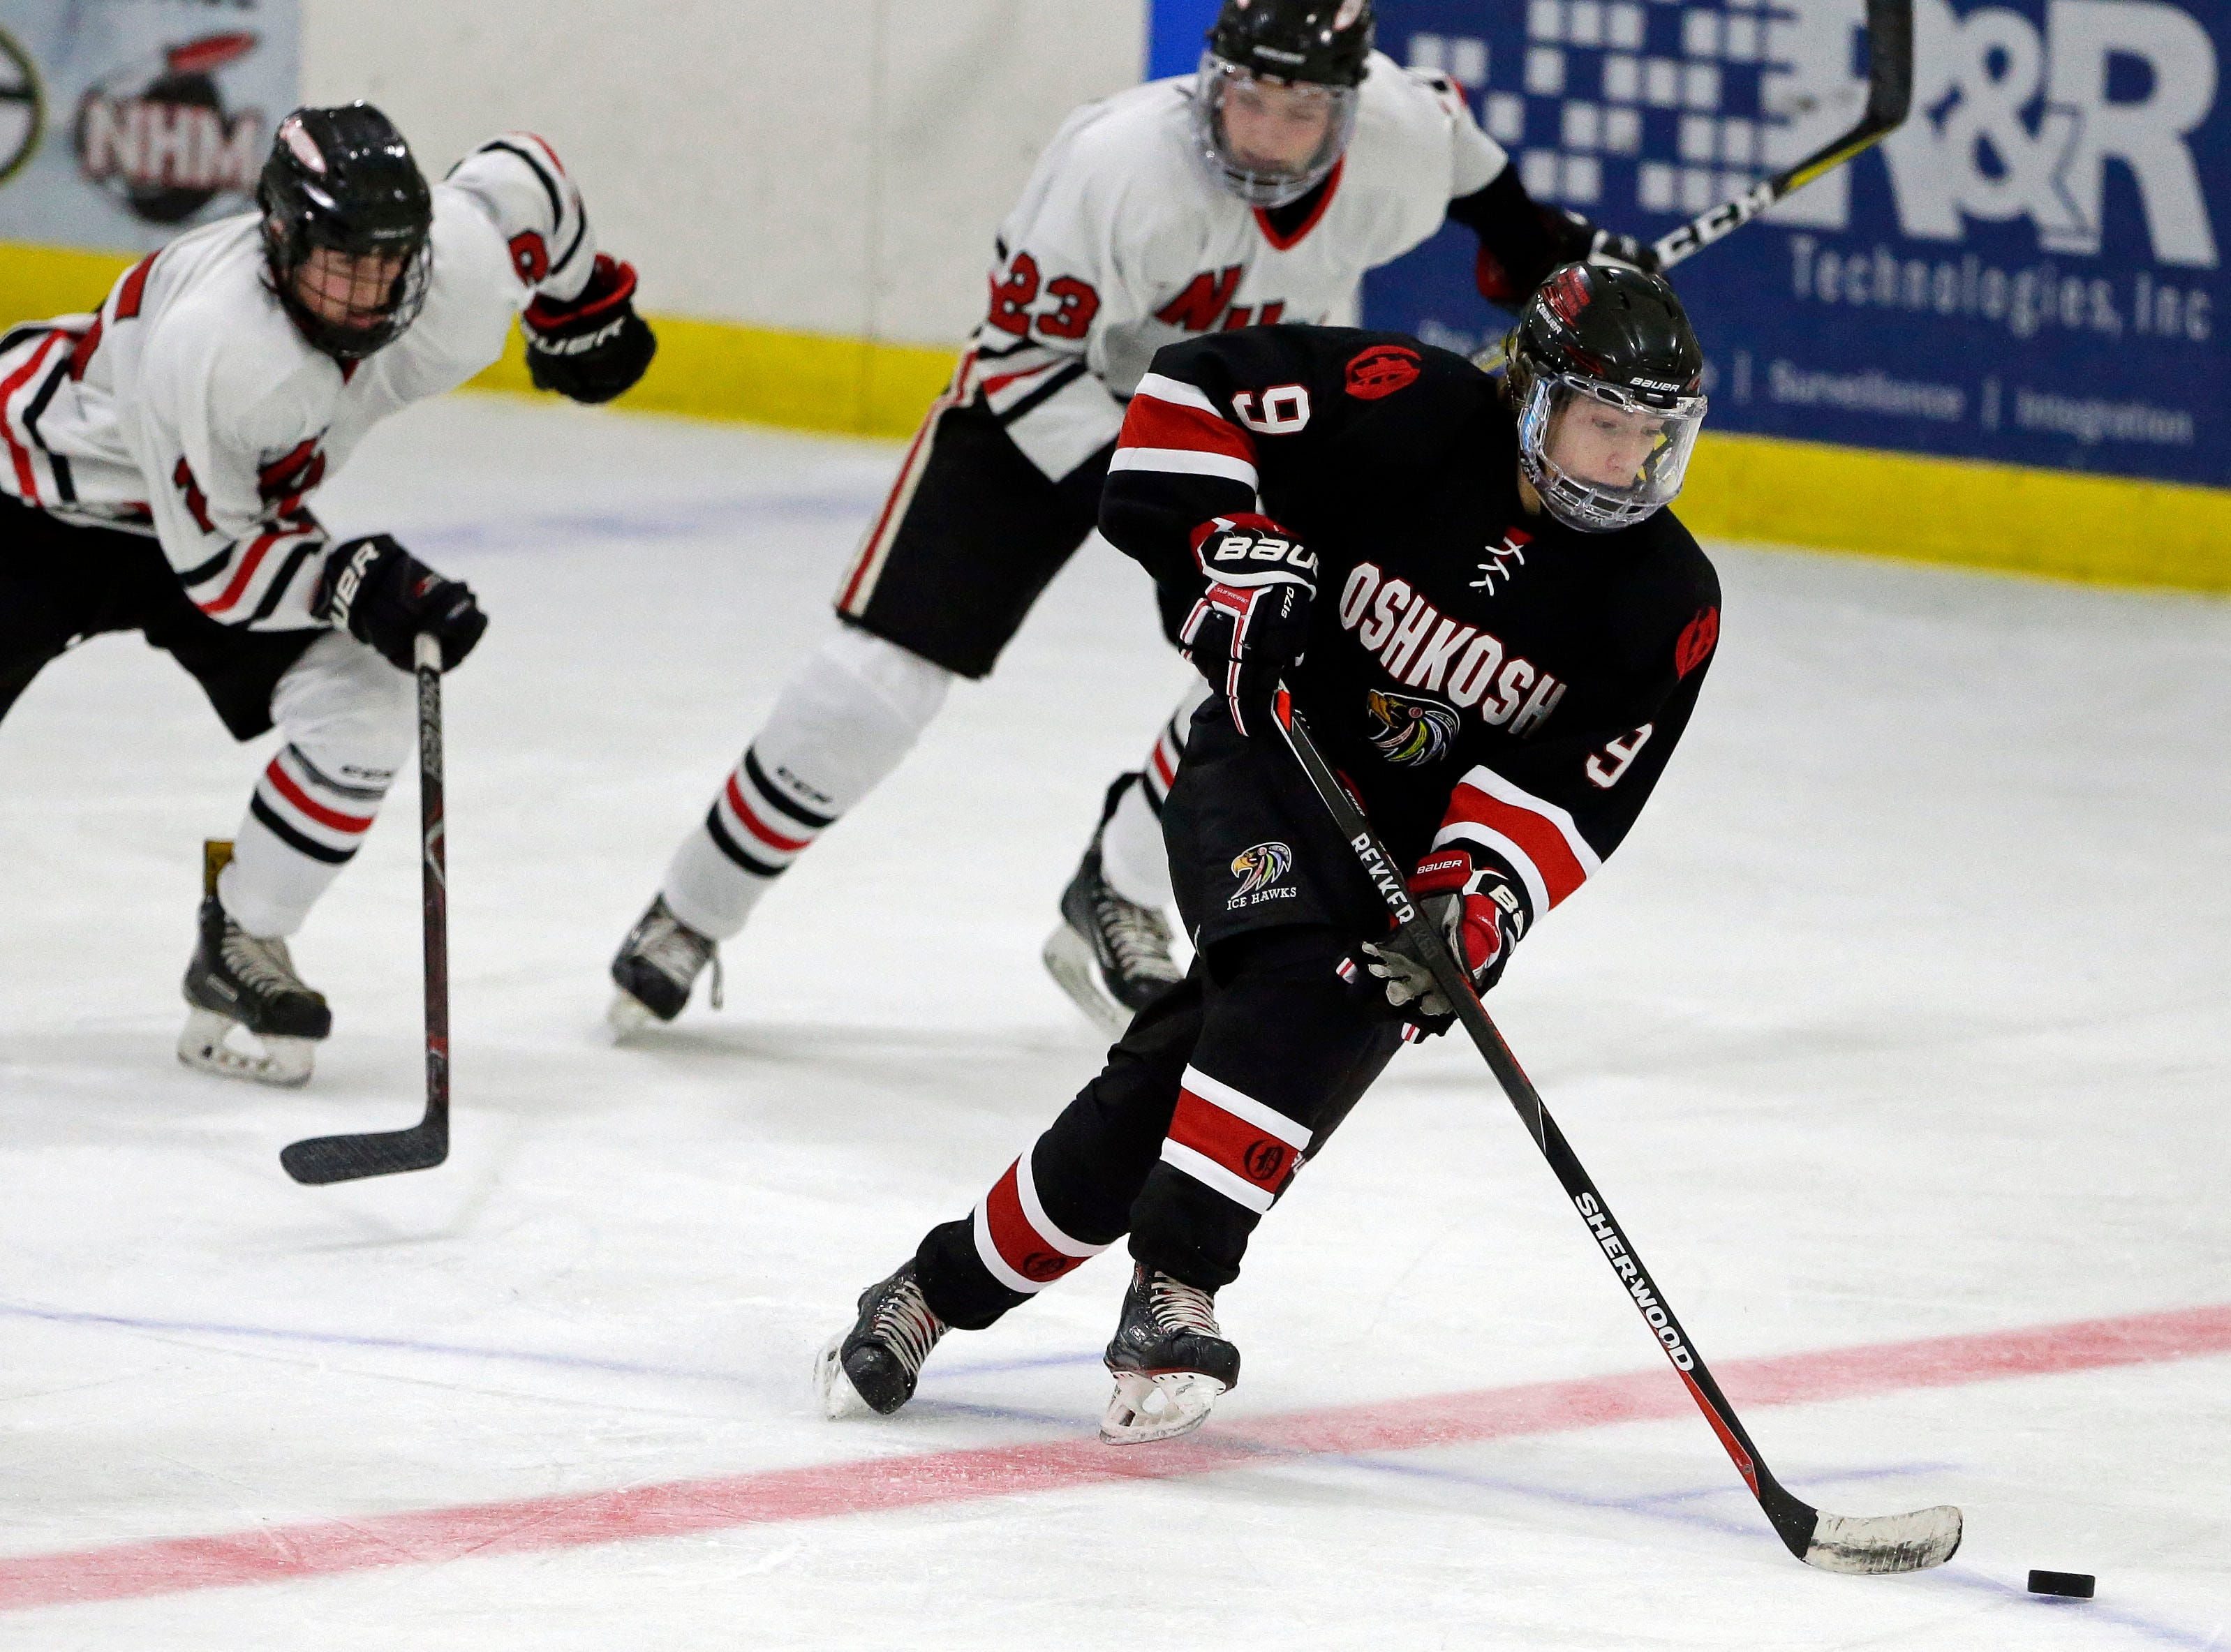 Mason Robertson of Oshkosh moves the puck against Neenah/Hortonville/Menasha in a Badgerland Conference hockey game Tuesday, December 4, 2018, at Tri-County Ice Arena in Fox Crossing, Wis.Ron Page/USA TODAY NETWORK-Wisconsin